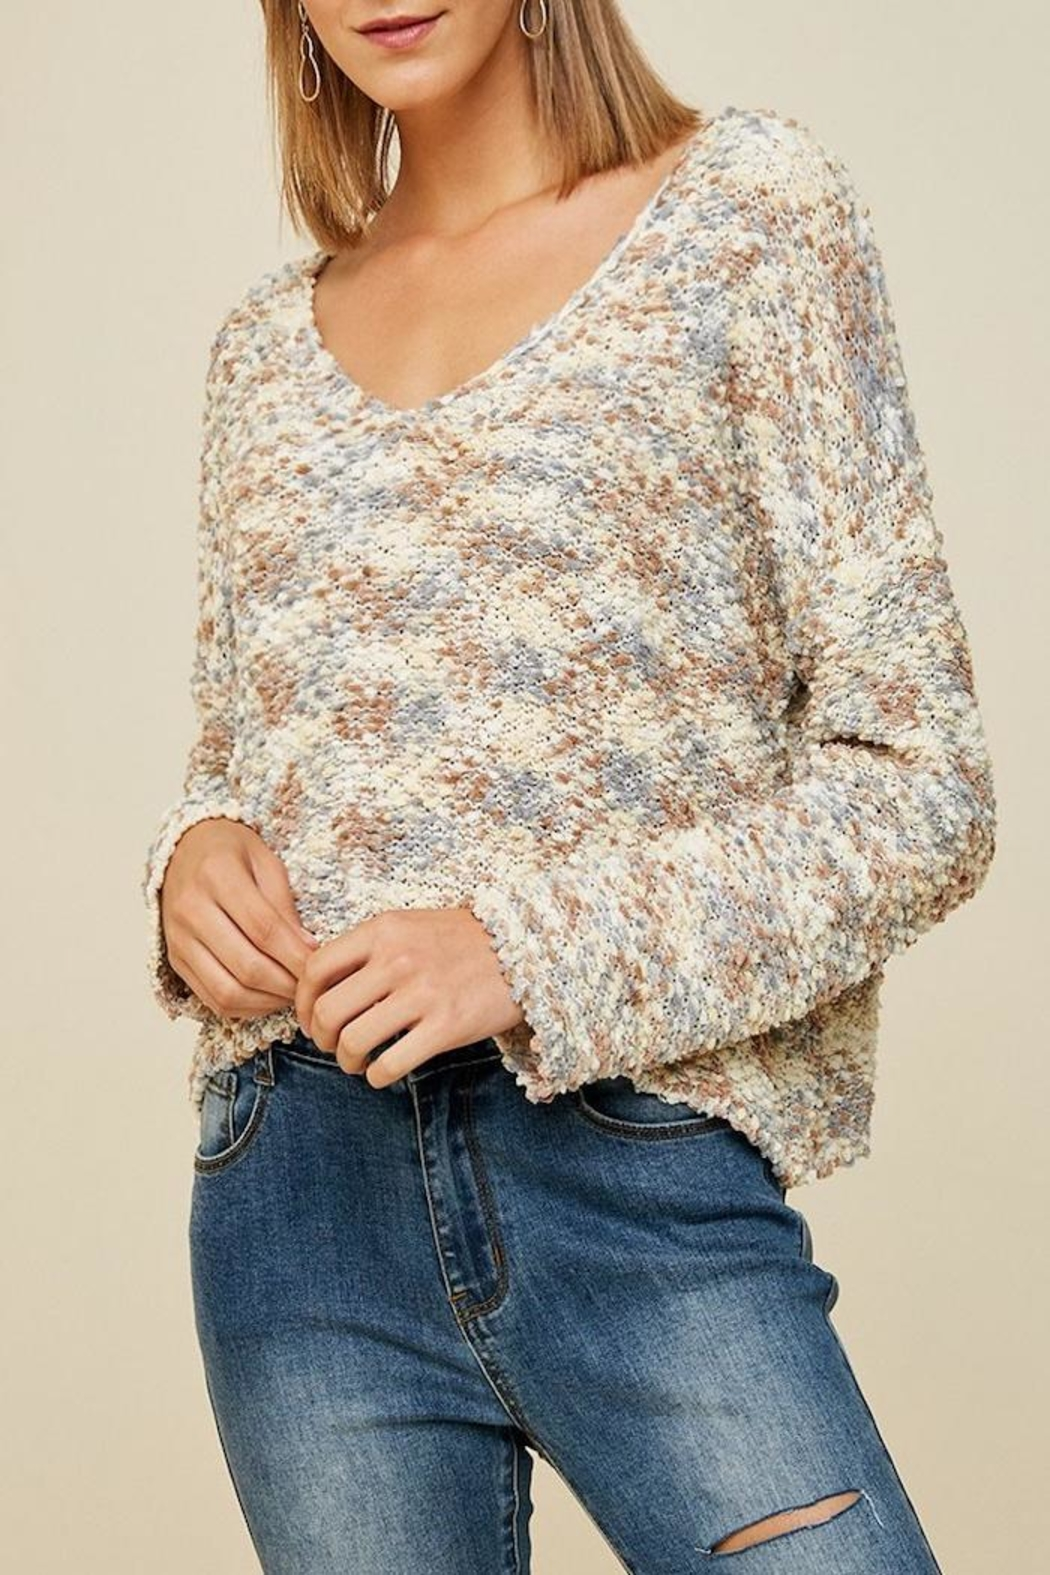 Apricot Lane Cappuccino Sweater - Front Full Image